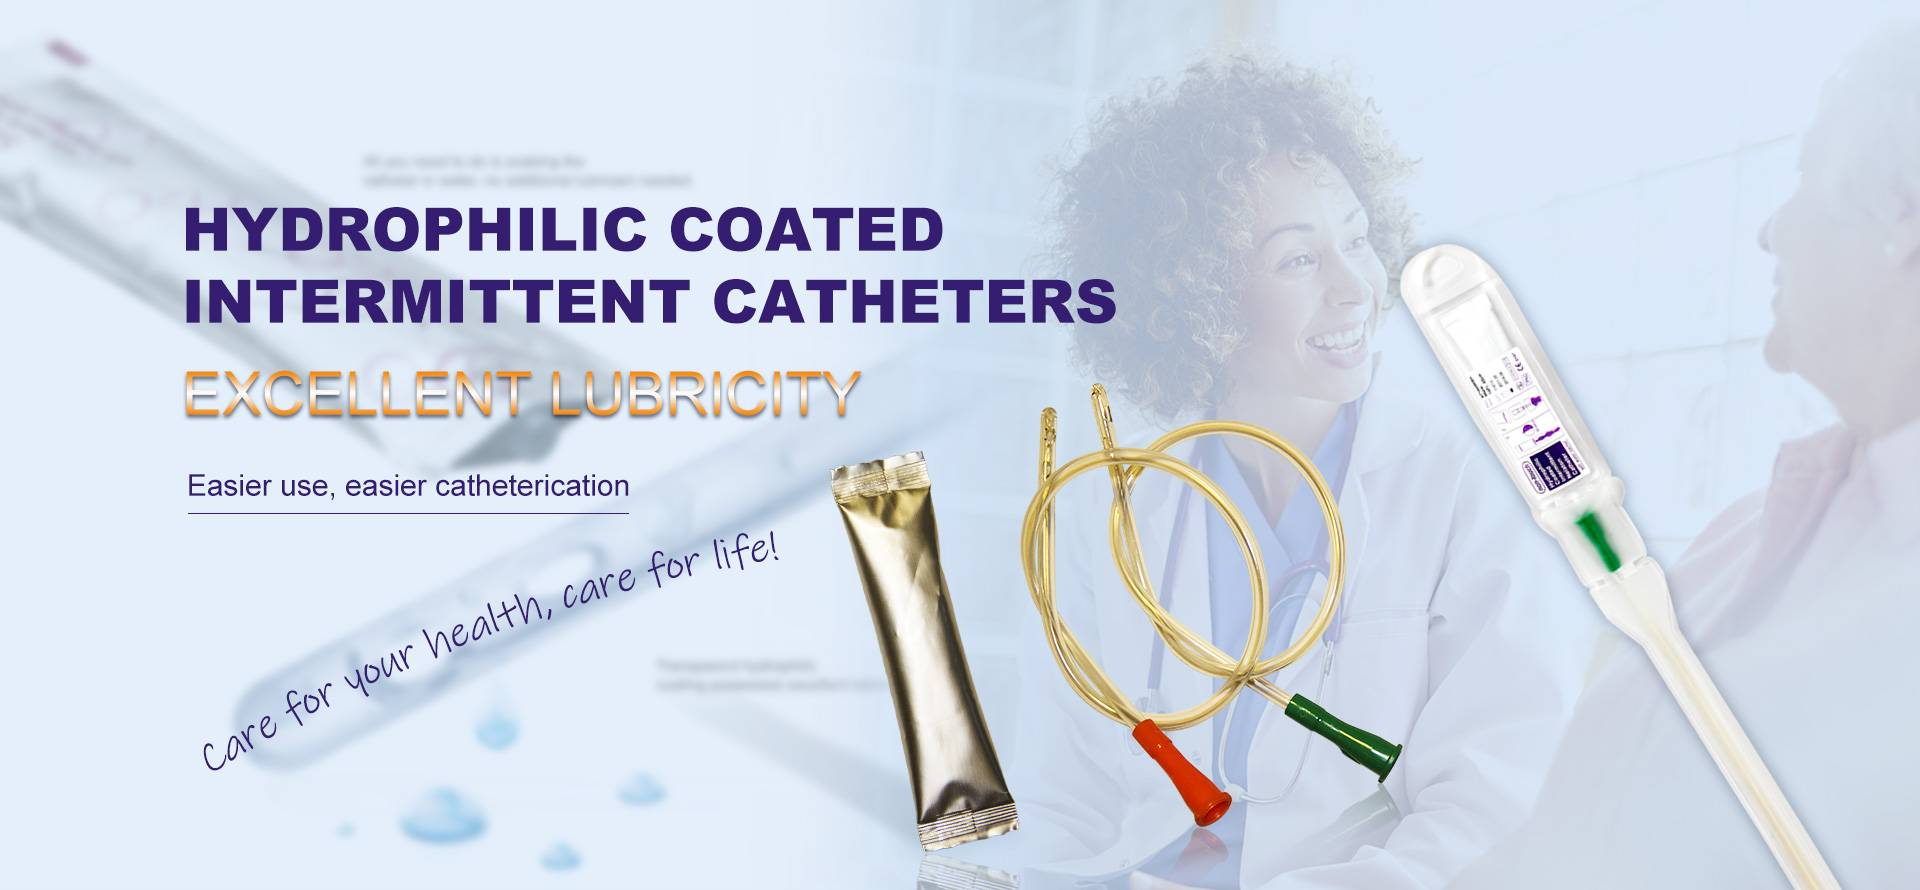 Hydrophilic Coated Intermittent Catheters